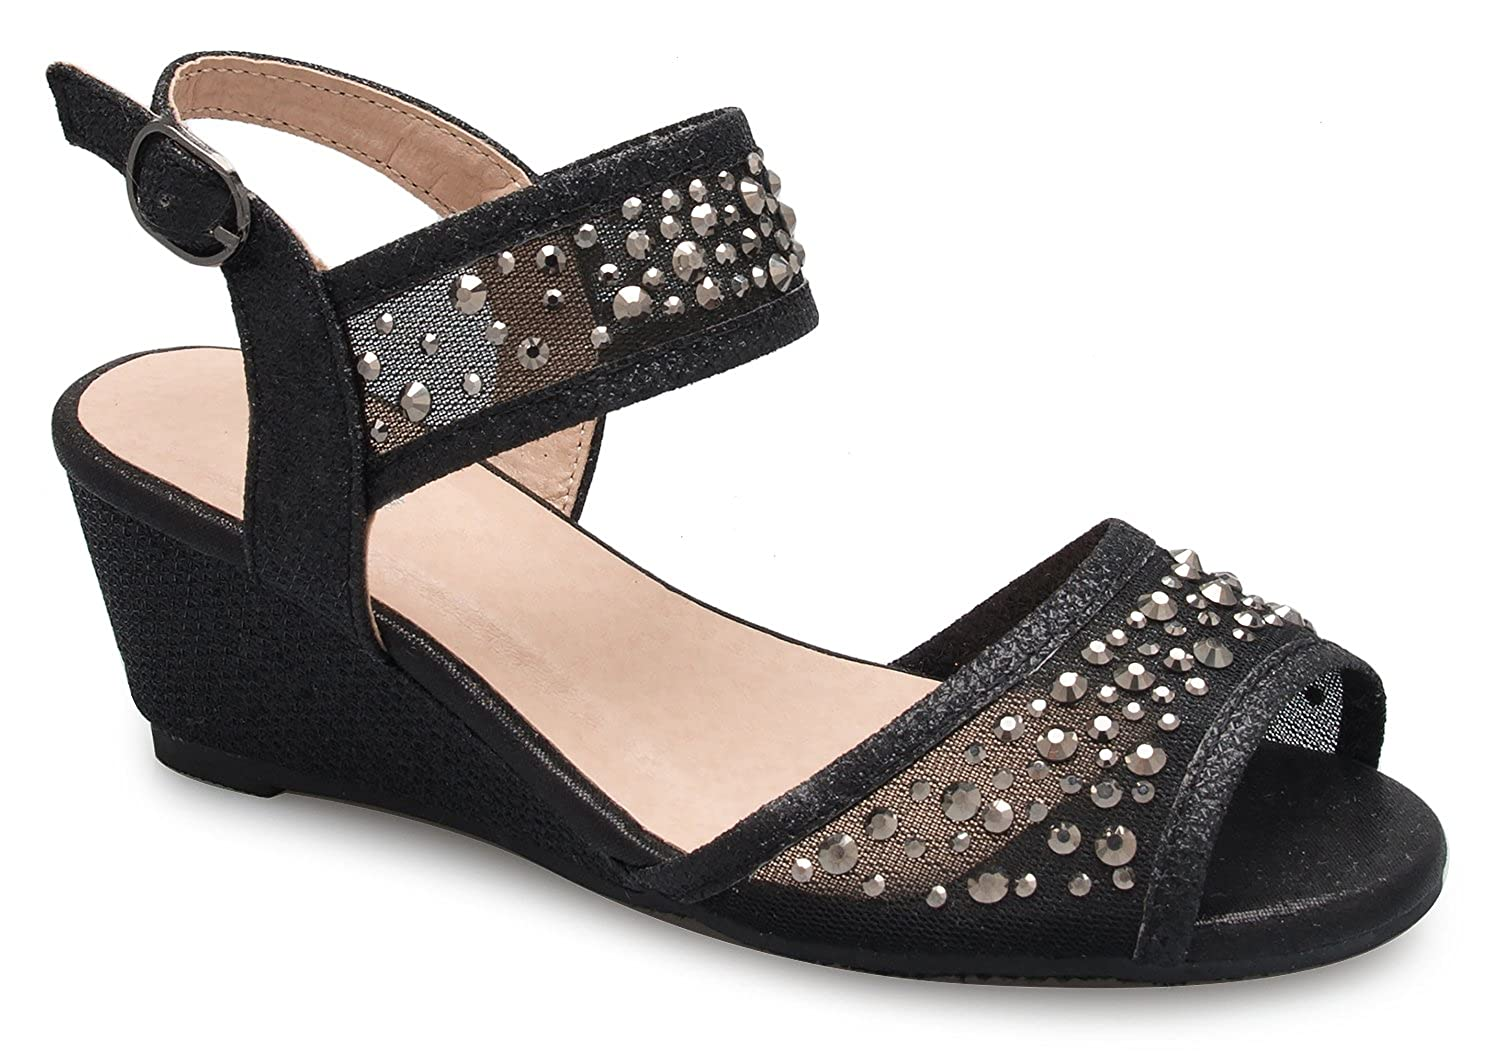 OLIVIA K Girl's Peep Toe Rhinestone Ankle Strap with Adjustable Buckle Wedge Sandals - Adorable, Comfort, Casual